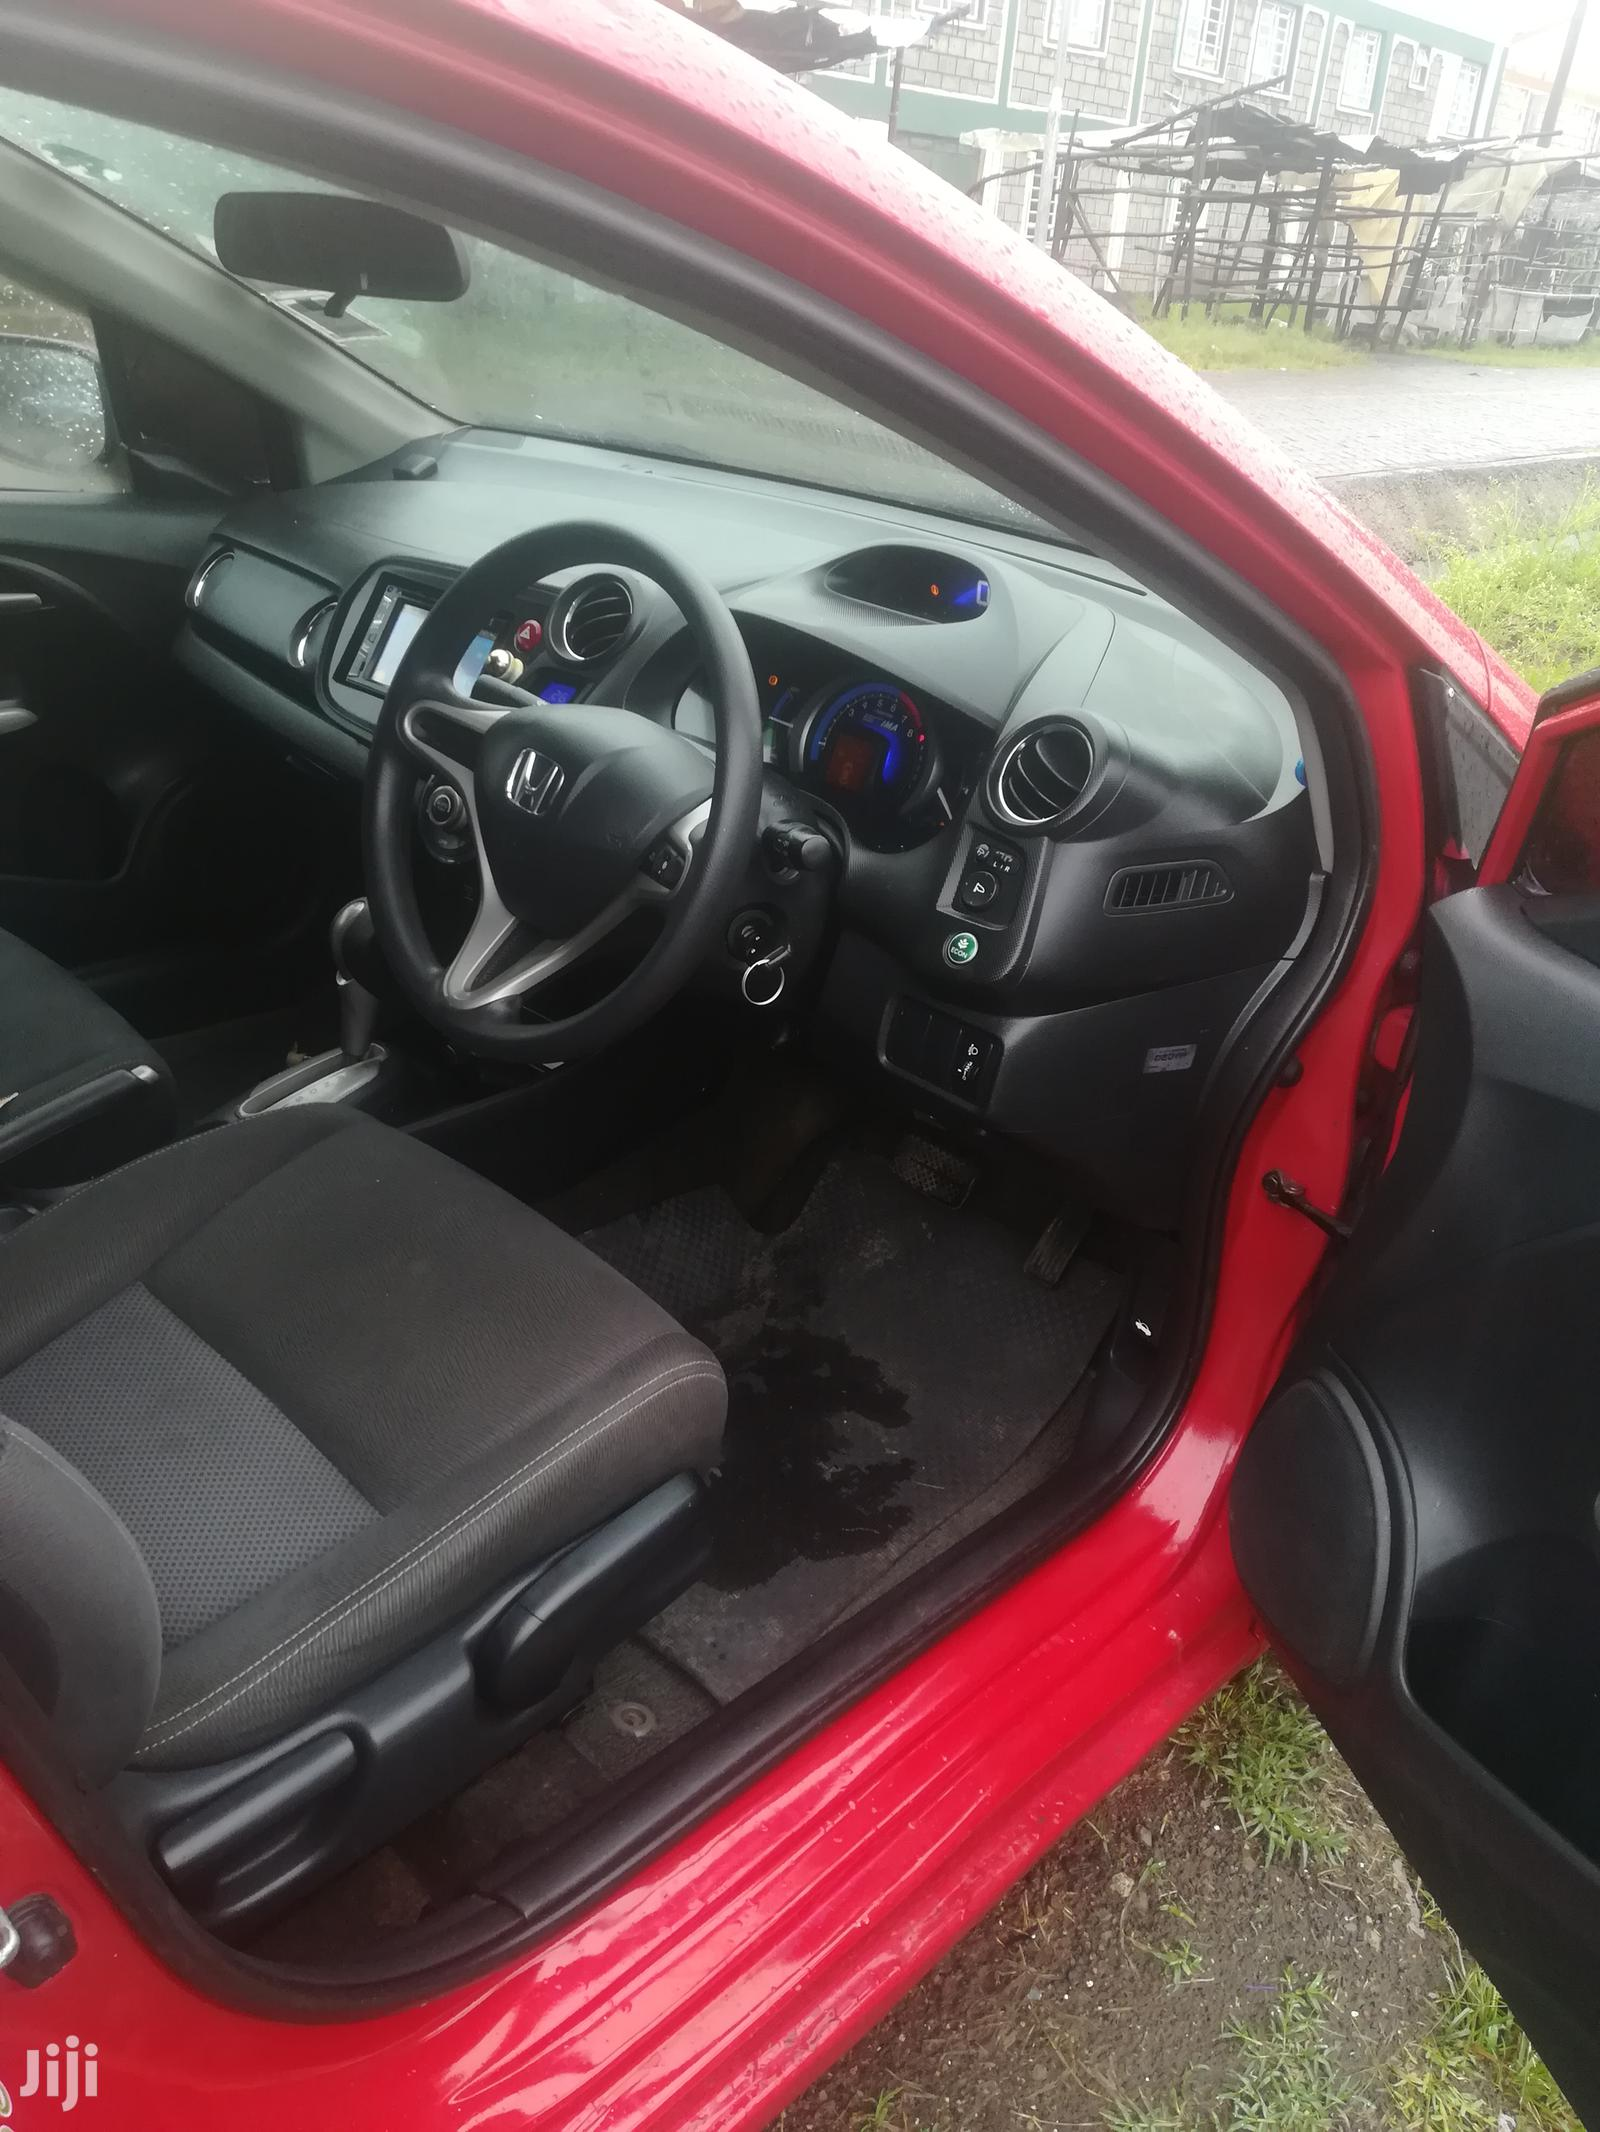 Archive: Honda Insight 2011 Red